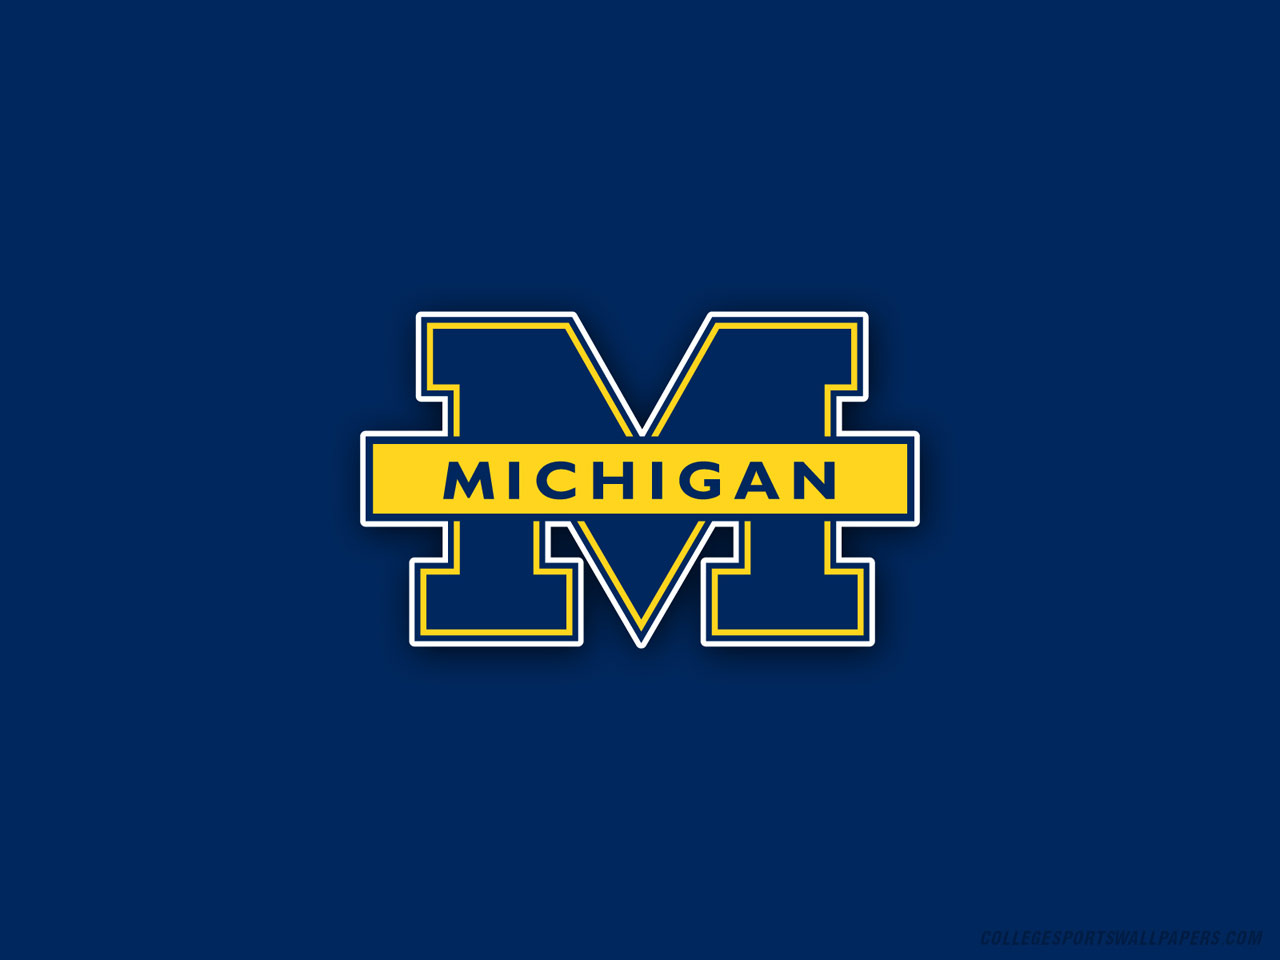 47] Michigan Wolverines Football Wallpaper on WallpaperSafari 1280x960